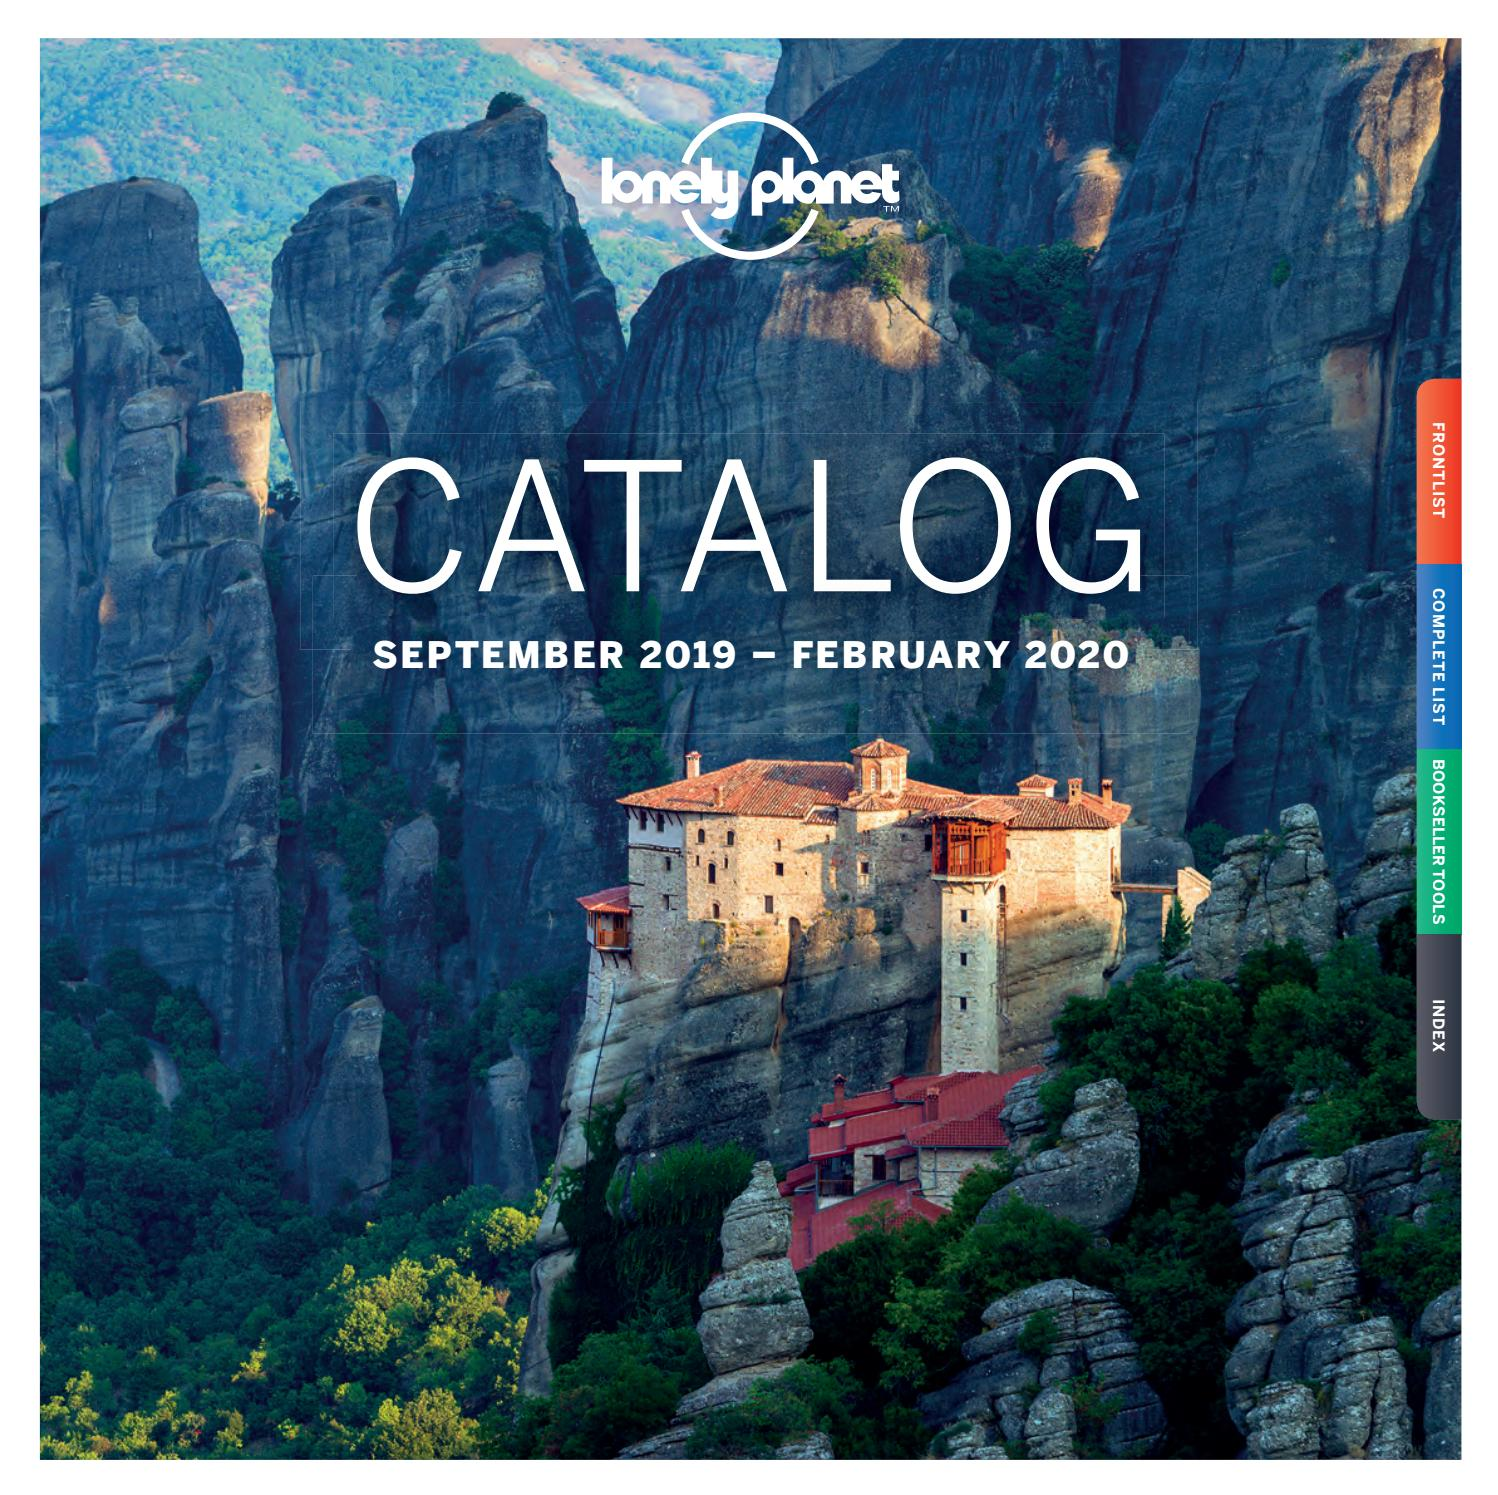 Lonely Planet Catalog Sep 19 - FEB 20 - US by Lonely Planet